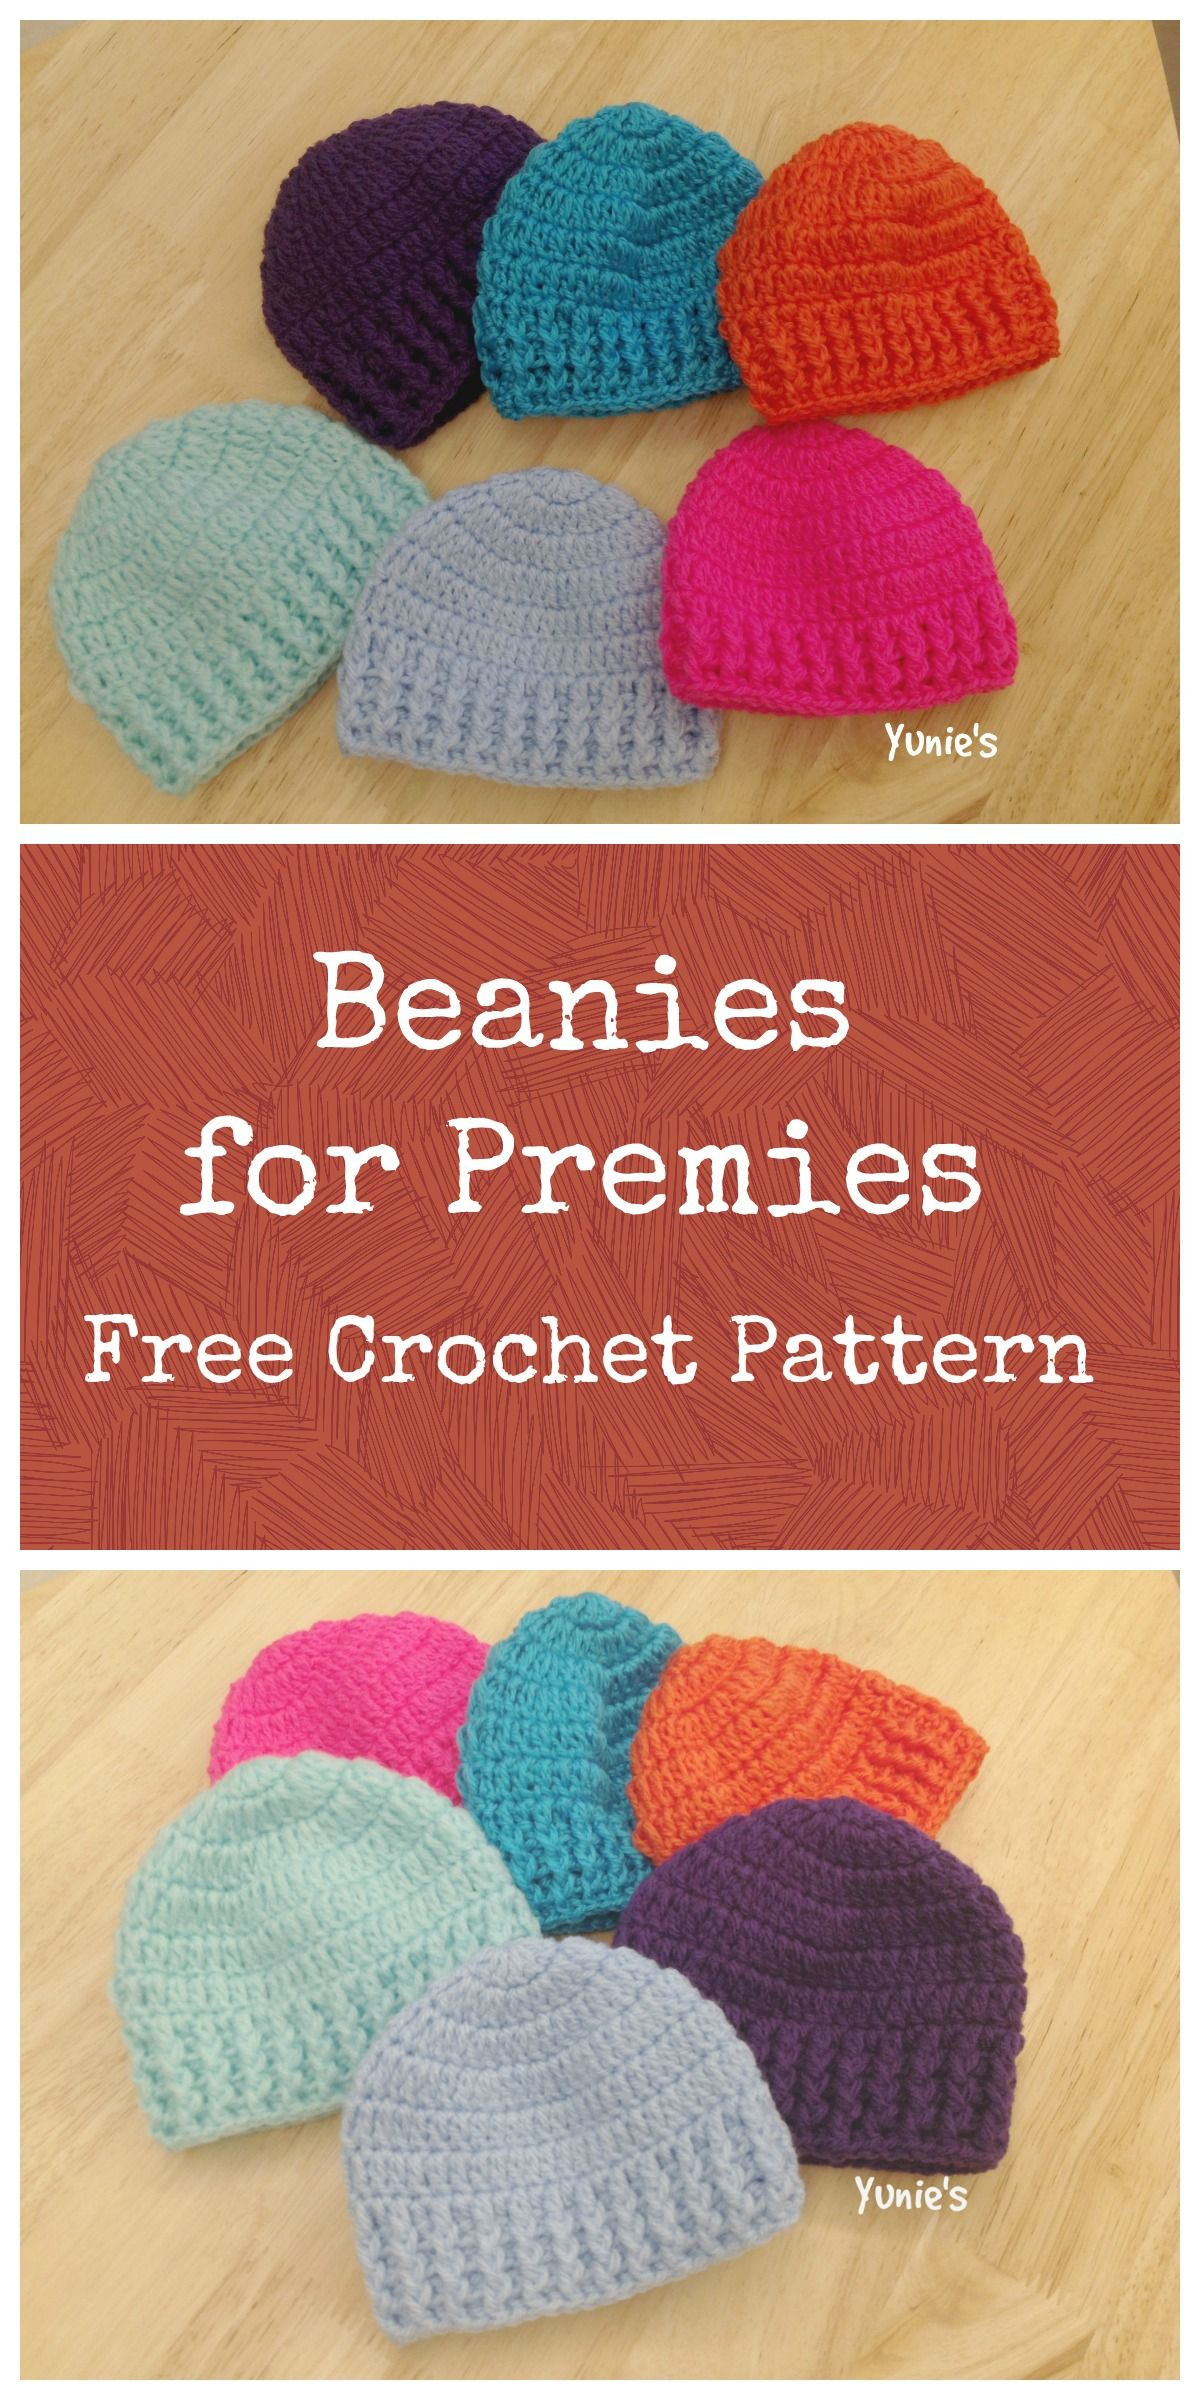 Beanies for premies a free and simple beanie designs for preemies free crochet pattern for premature babies a simple beanie design that you can complete within an hour bankloansurffo Gallery